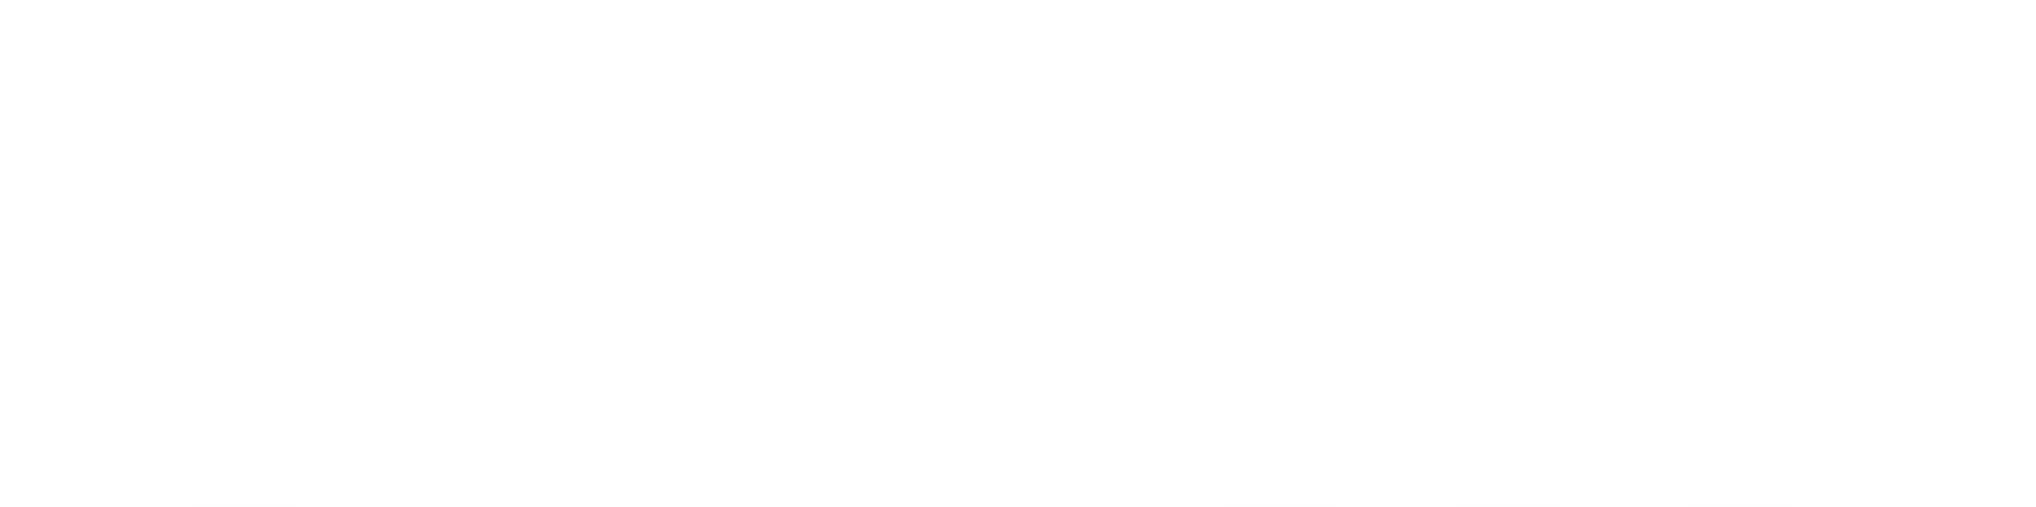 stripes white trimmed.png